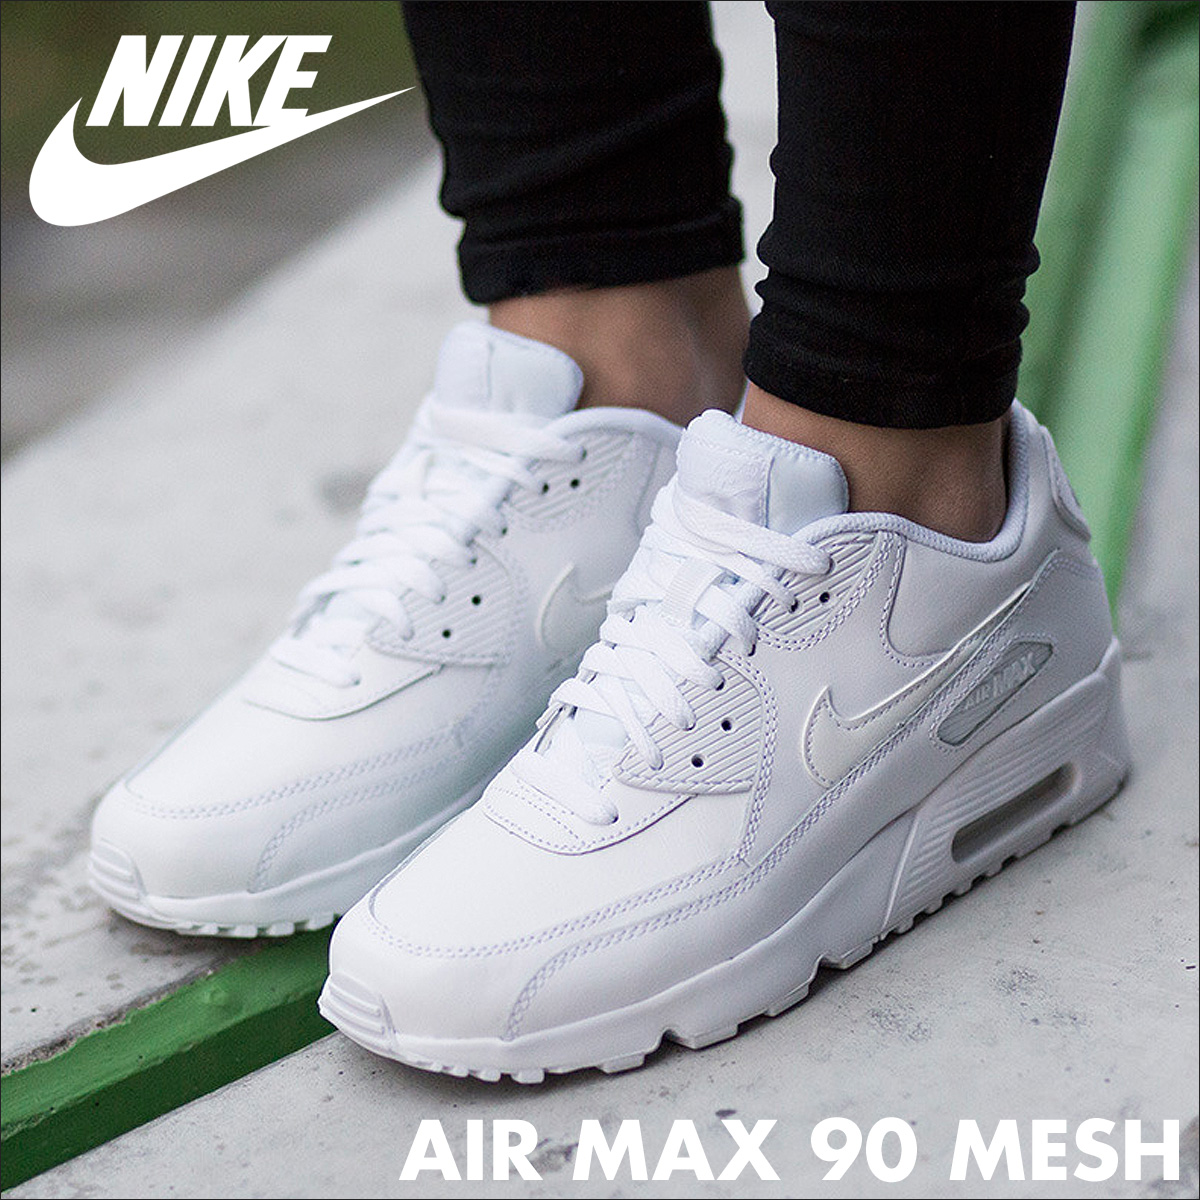 promo code 63435 8c5e3 ... top quality nike nike air max 90 ladys sneakers air max 90 mesh gs  833418 100